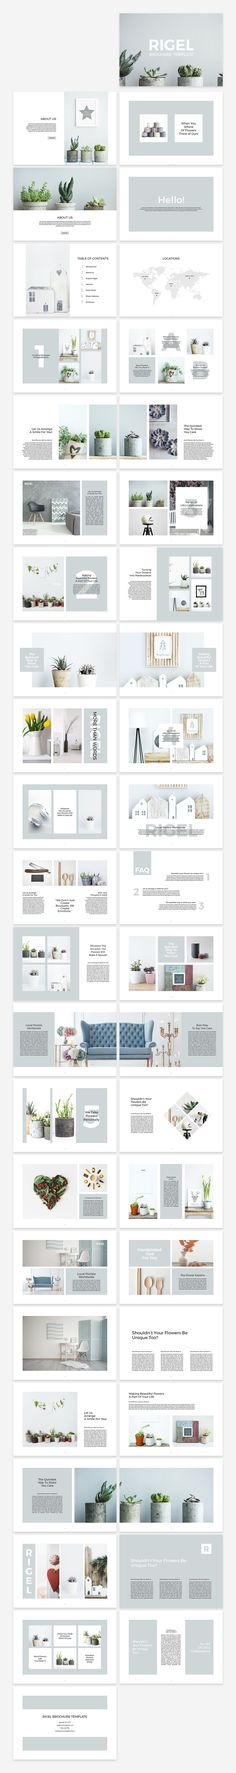 Studio Proposal By Studio Standard On Creativemarket  Mullins